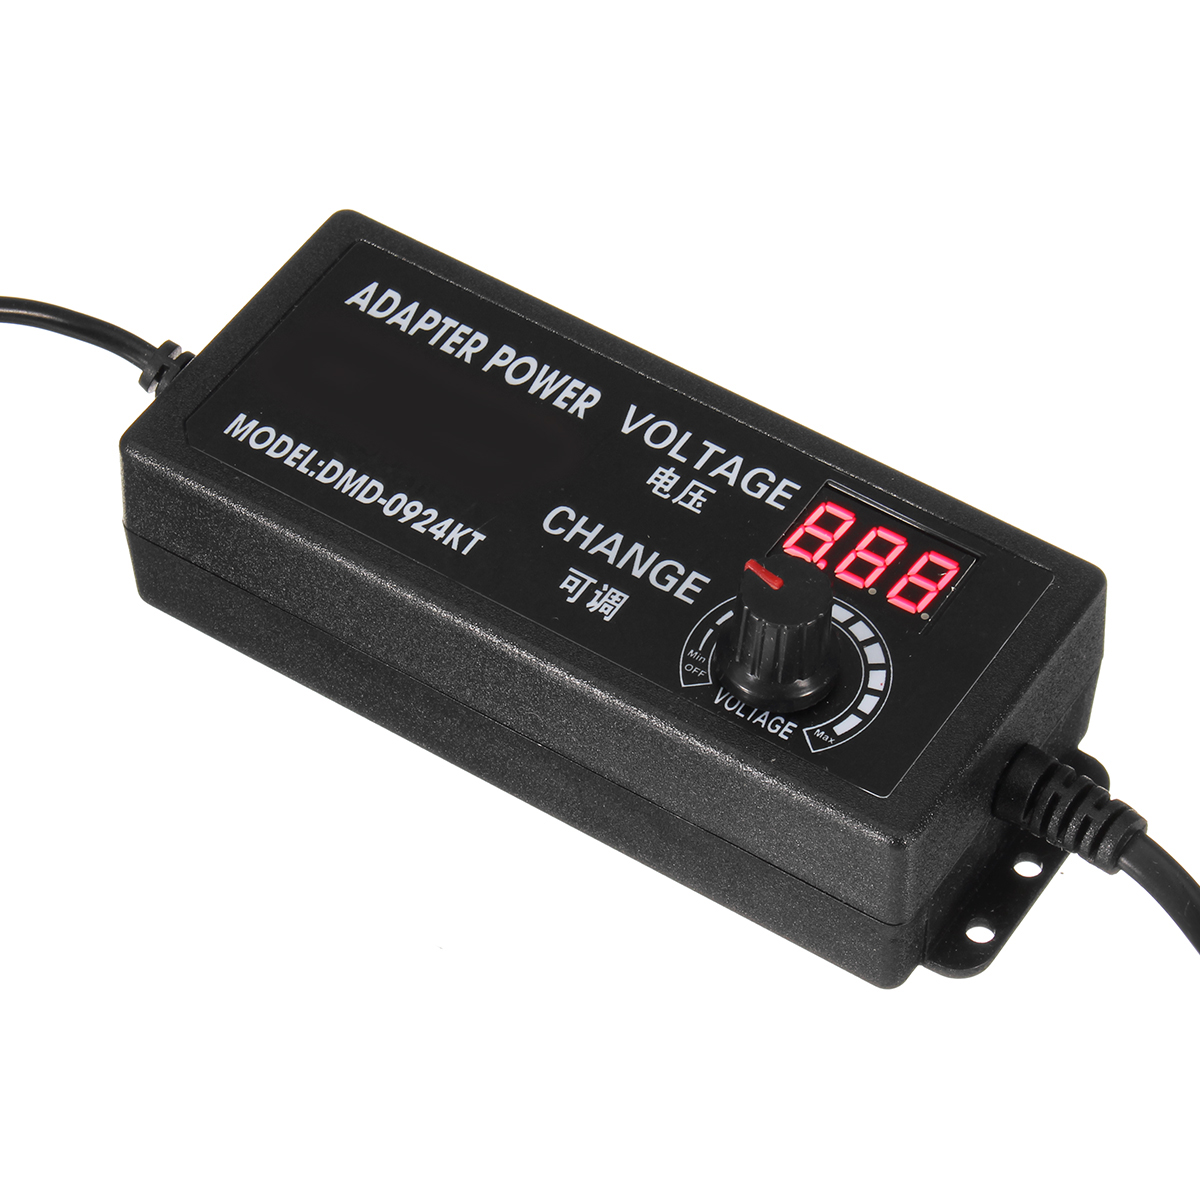 9-24V 2.5A 60W Speed Control Volt AC/DC Adjustable Power Adapter Supply with Display